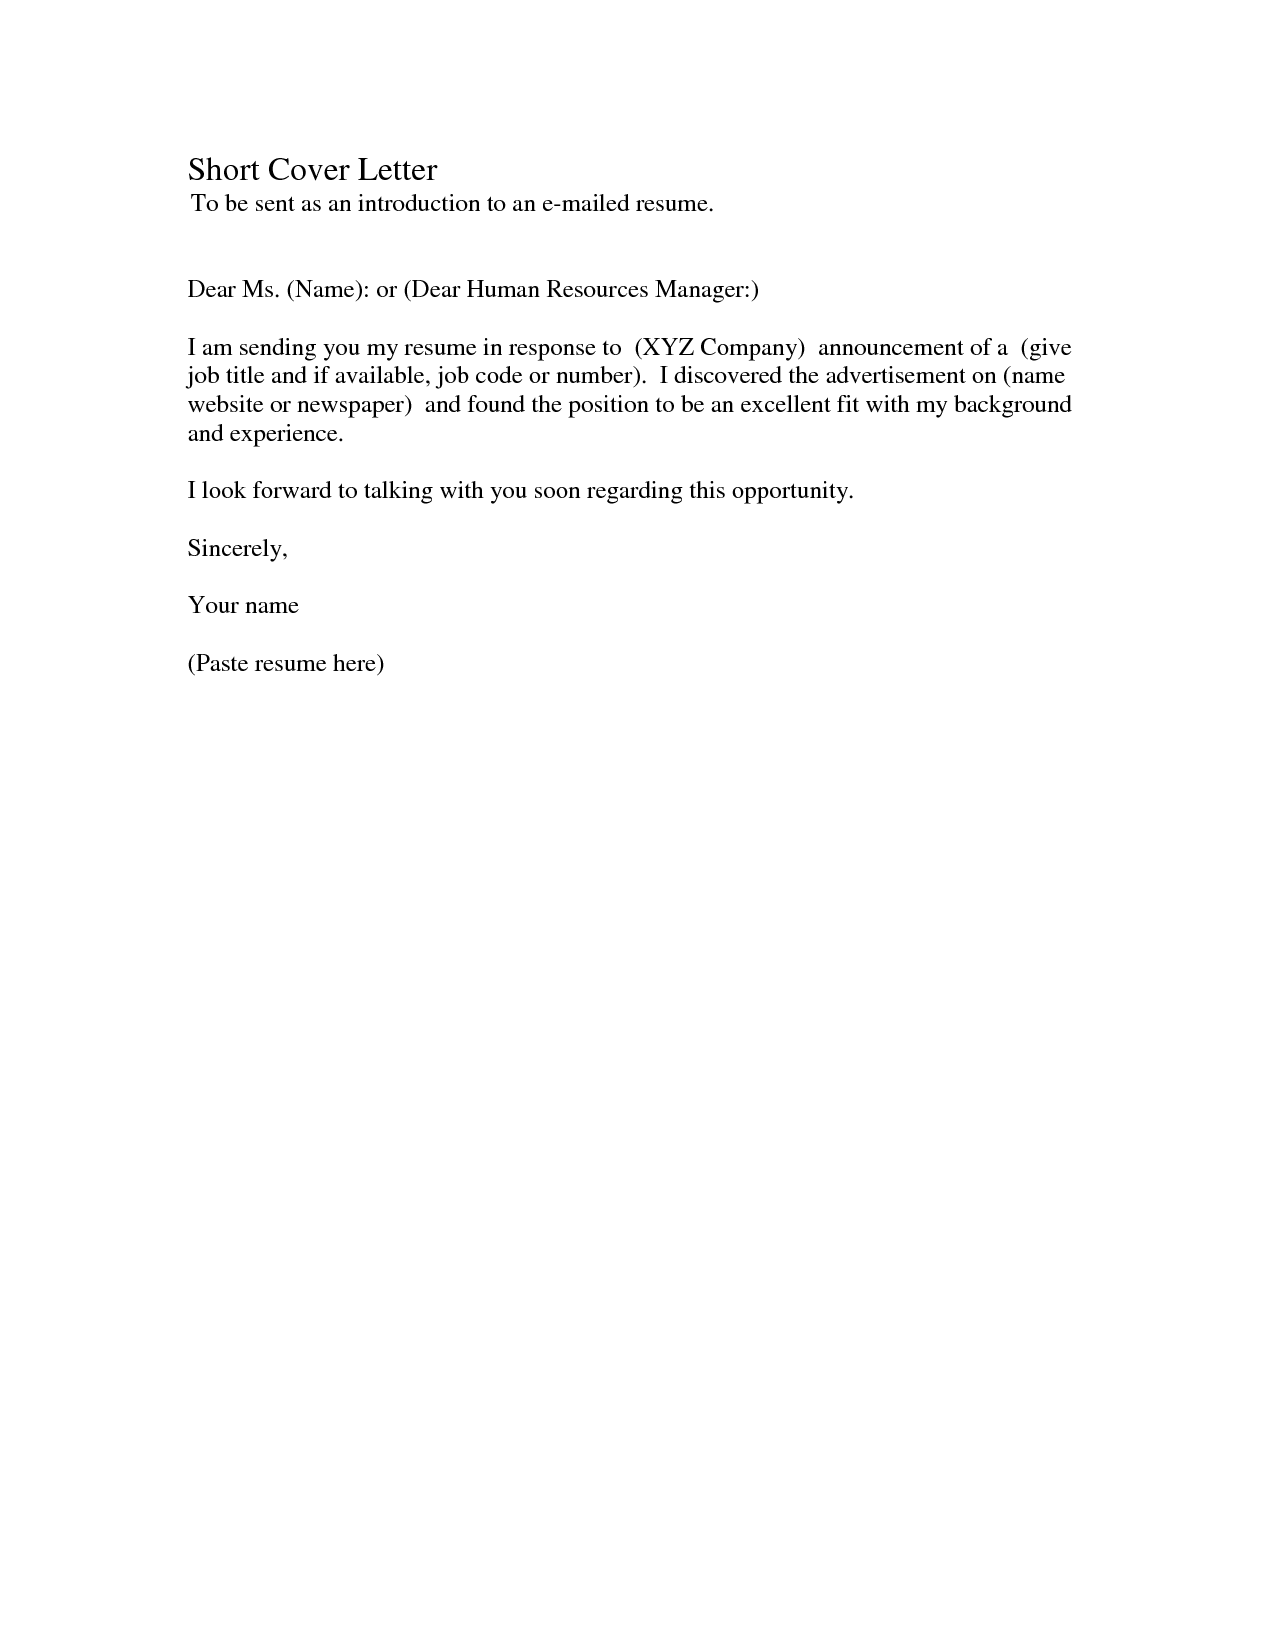 cover letter help receptionist resume top essay writingcover simple cover lettersimple cover letter application letter sample